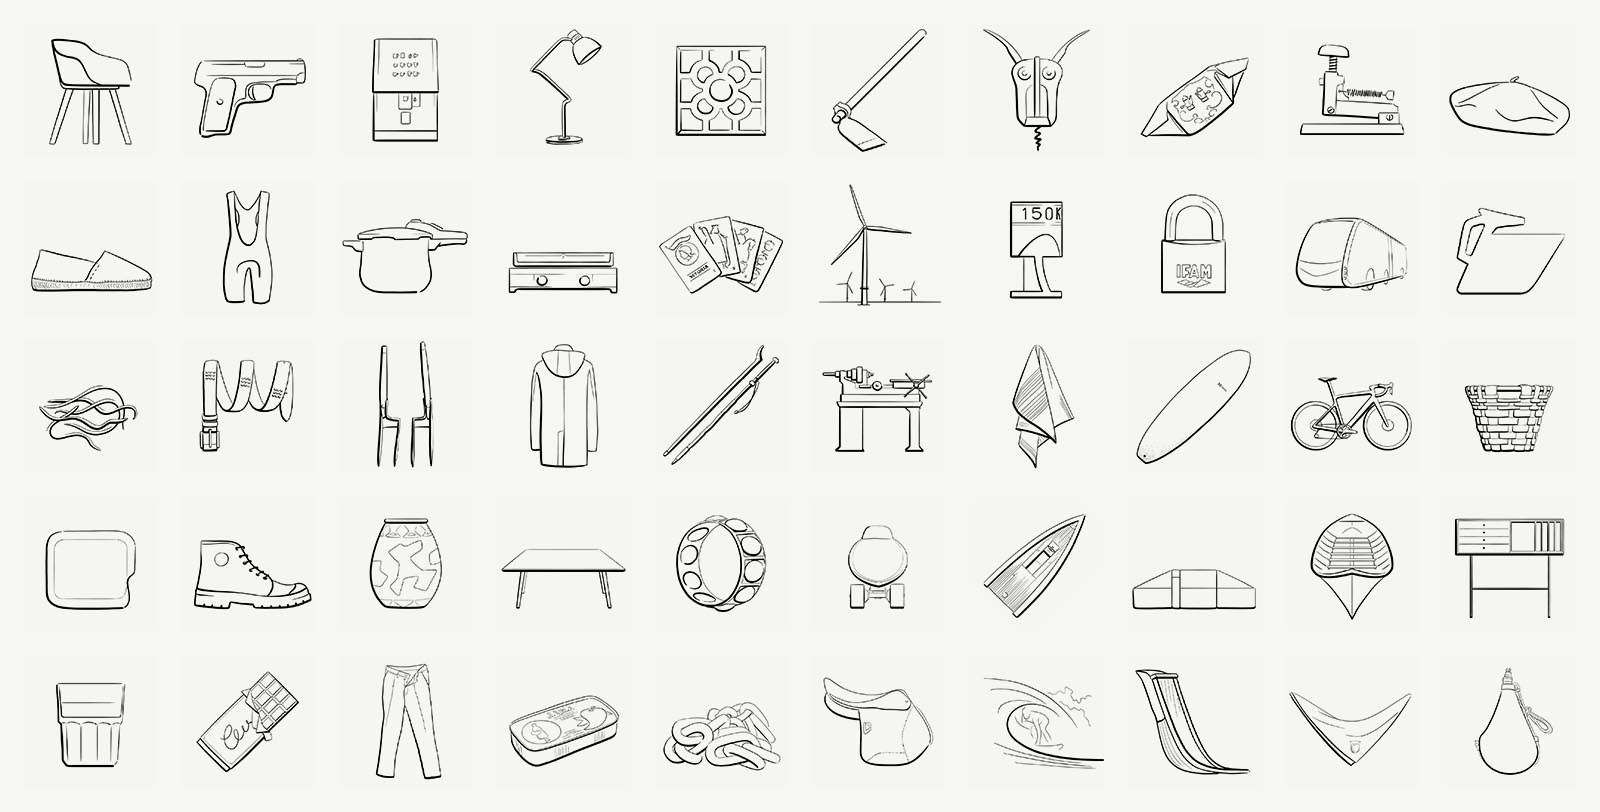 Illustrations of the 50 iconic objects from the Basque Country